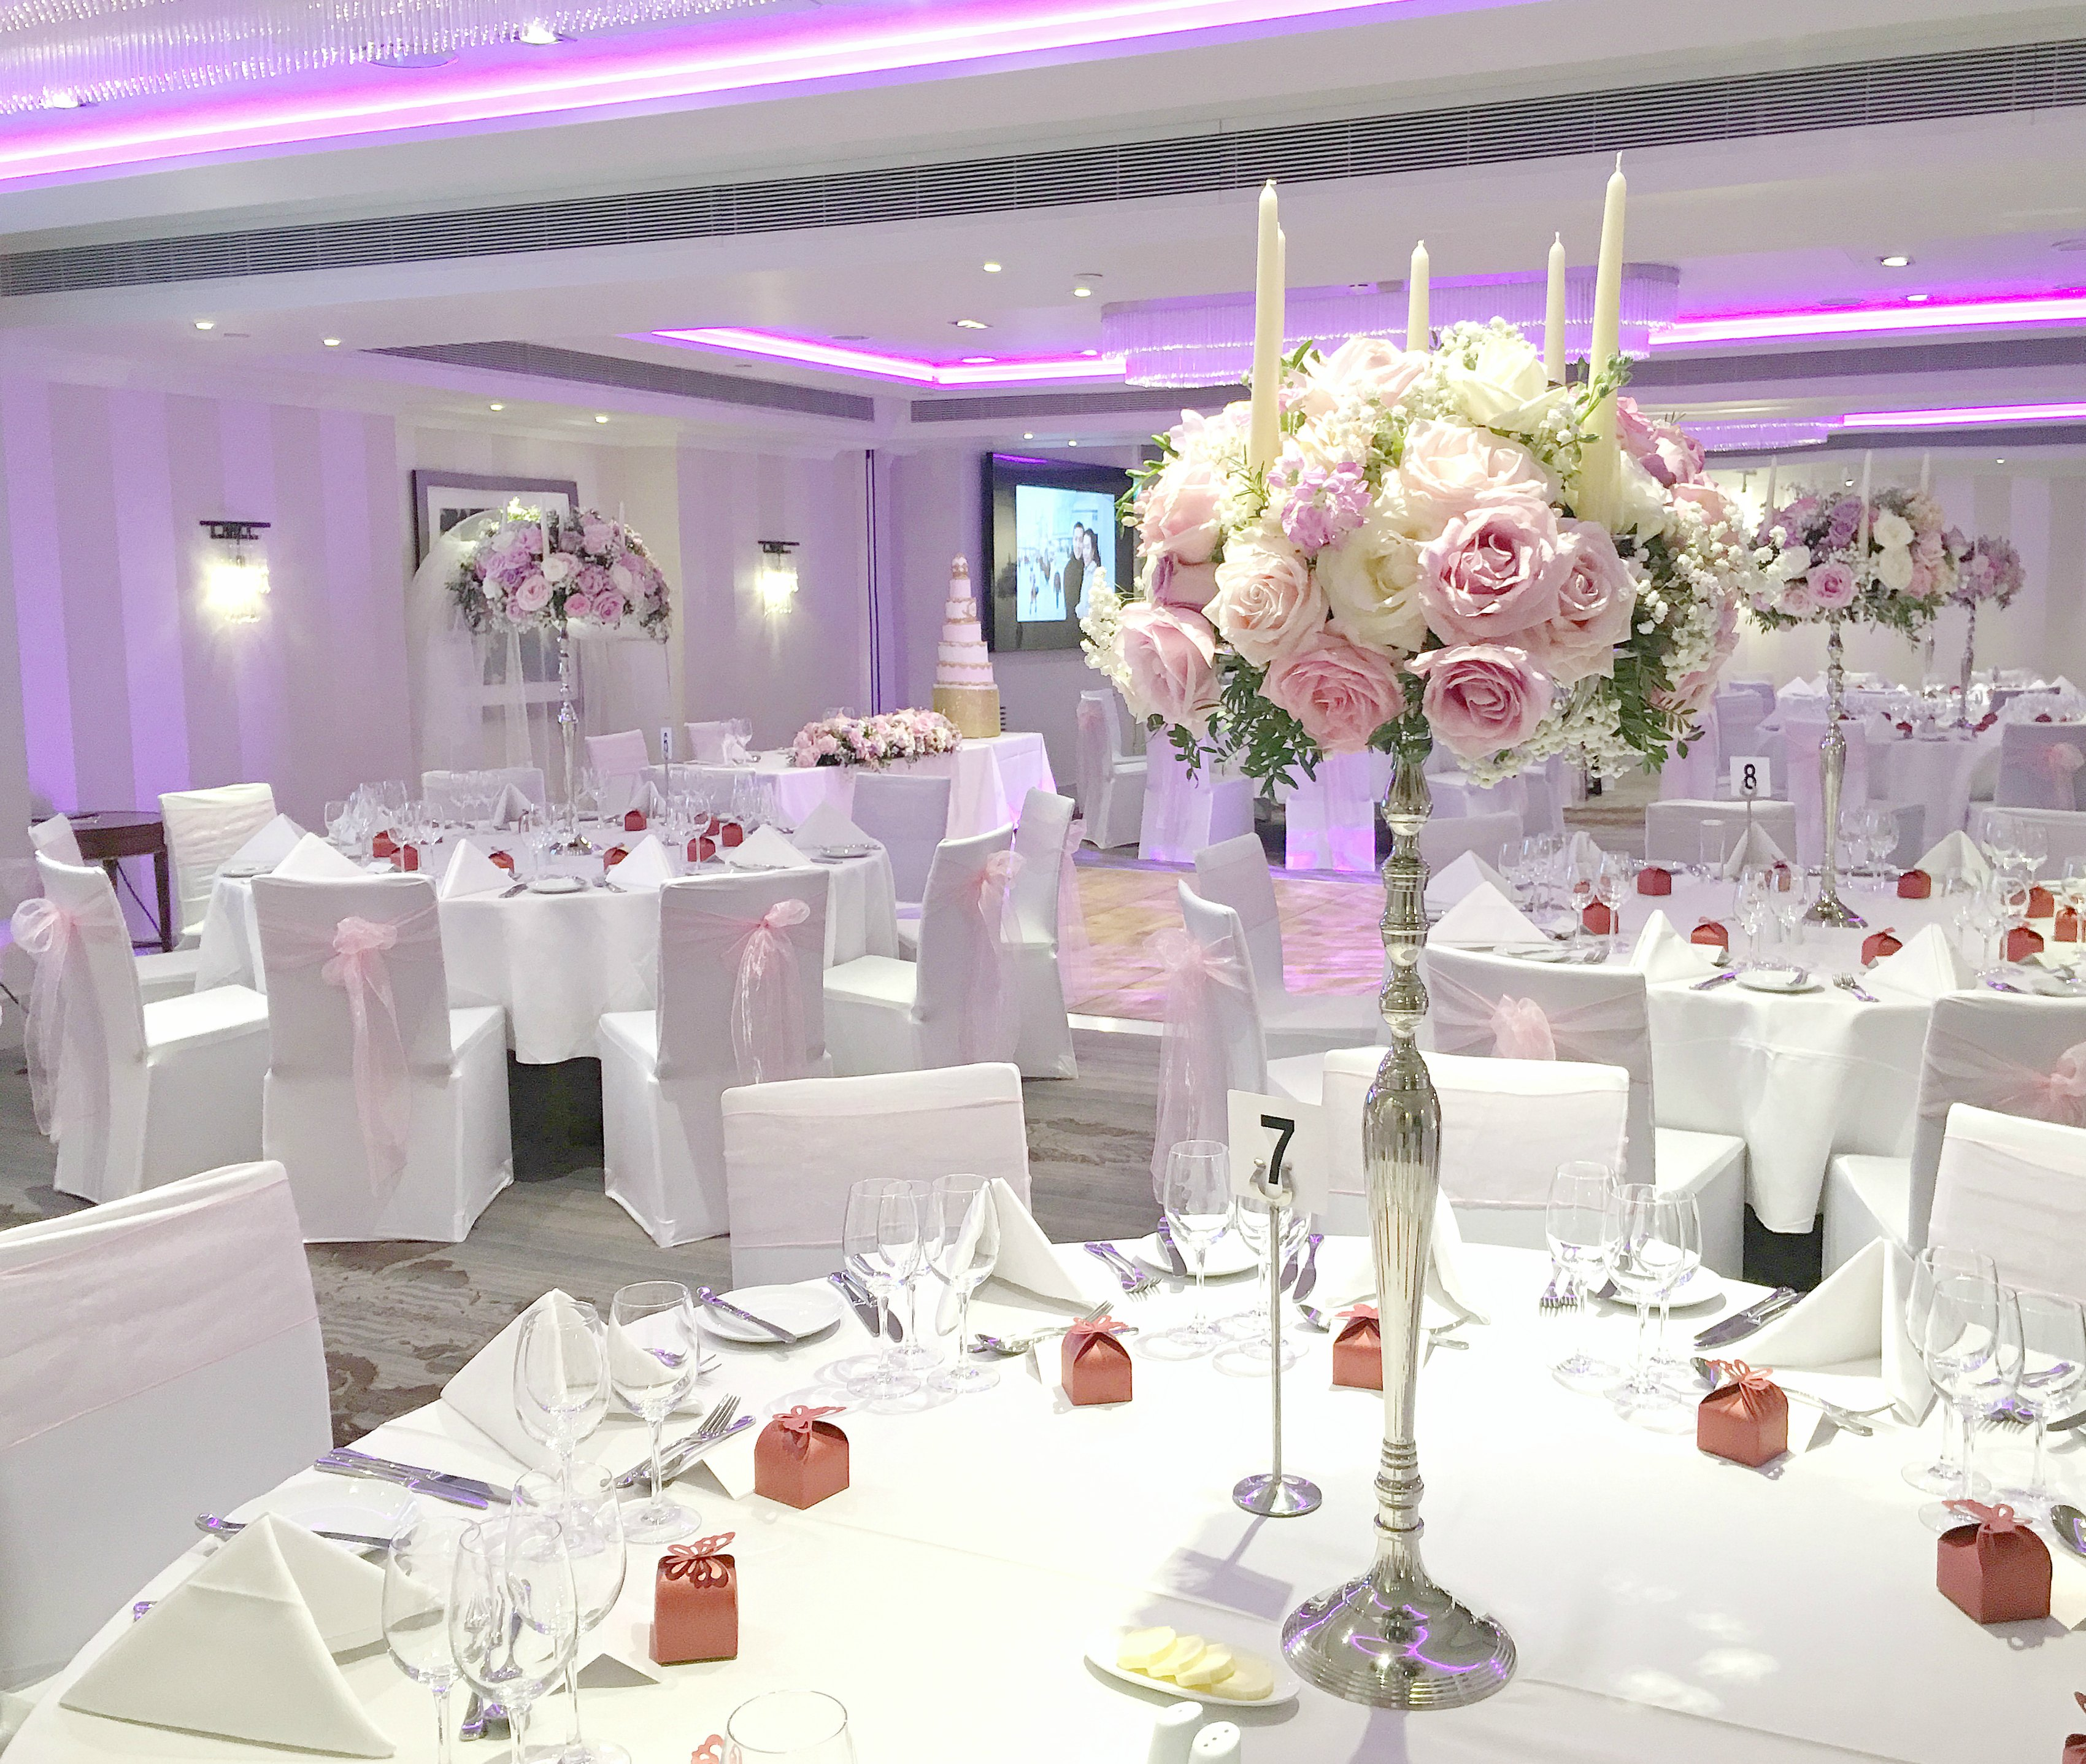 Pink and lilac wedding head table with flower arch backdrop with roses flowers Cherie Kelly London Sofitel St James